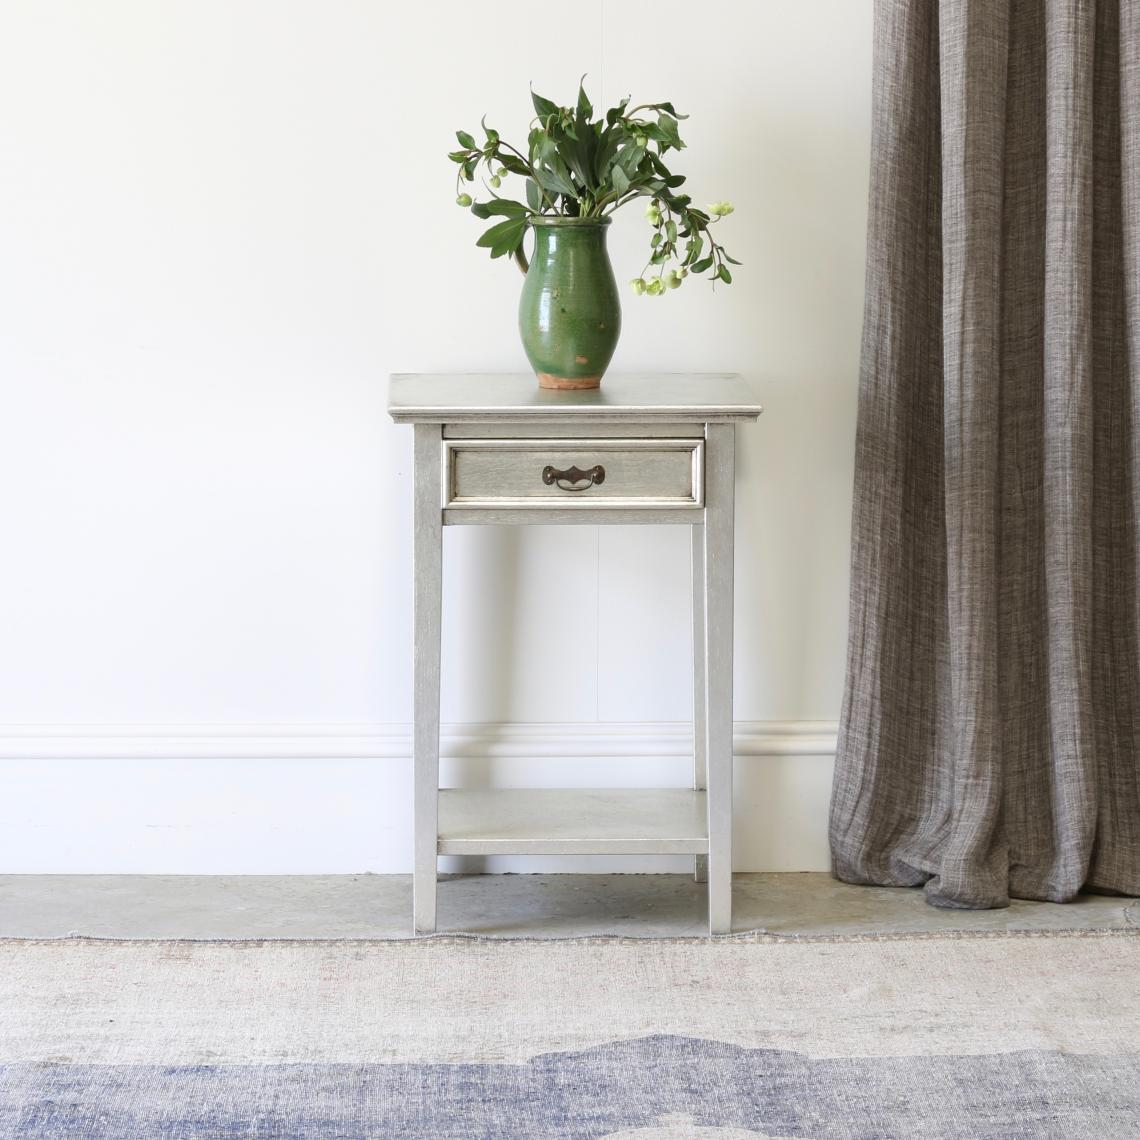 106-51 - Bedside Table with a zinc finish